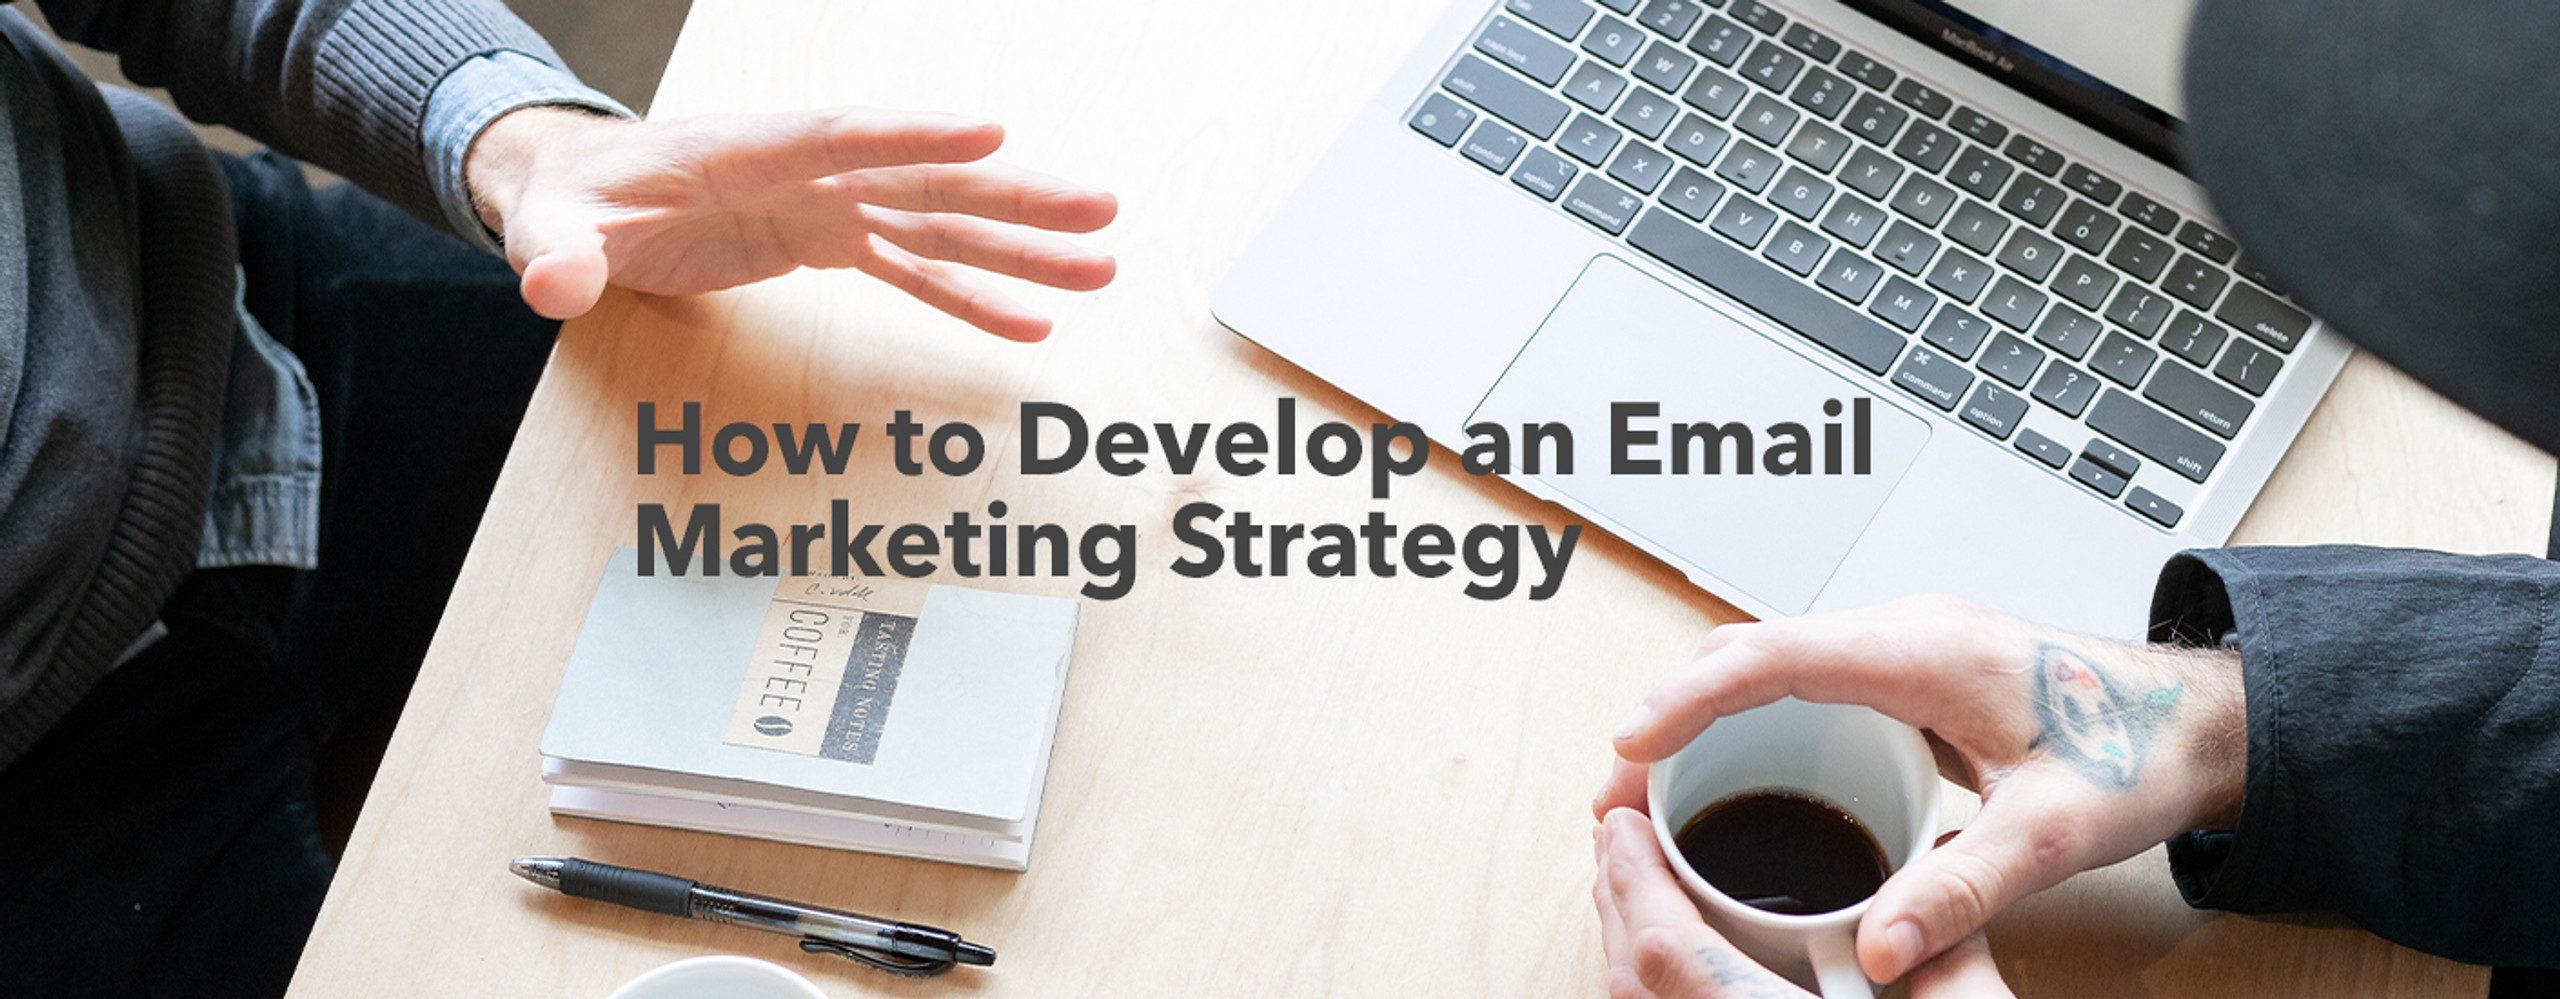 How to Develop an Email Marketing Strategy